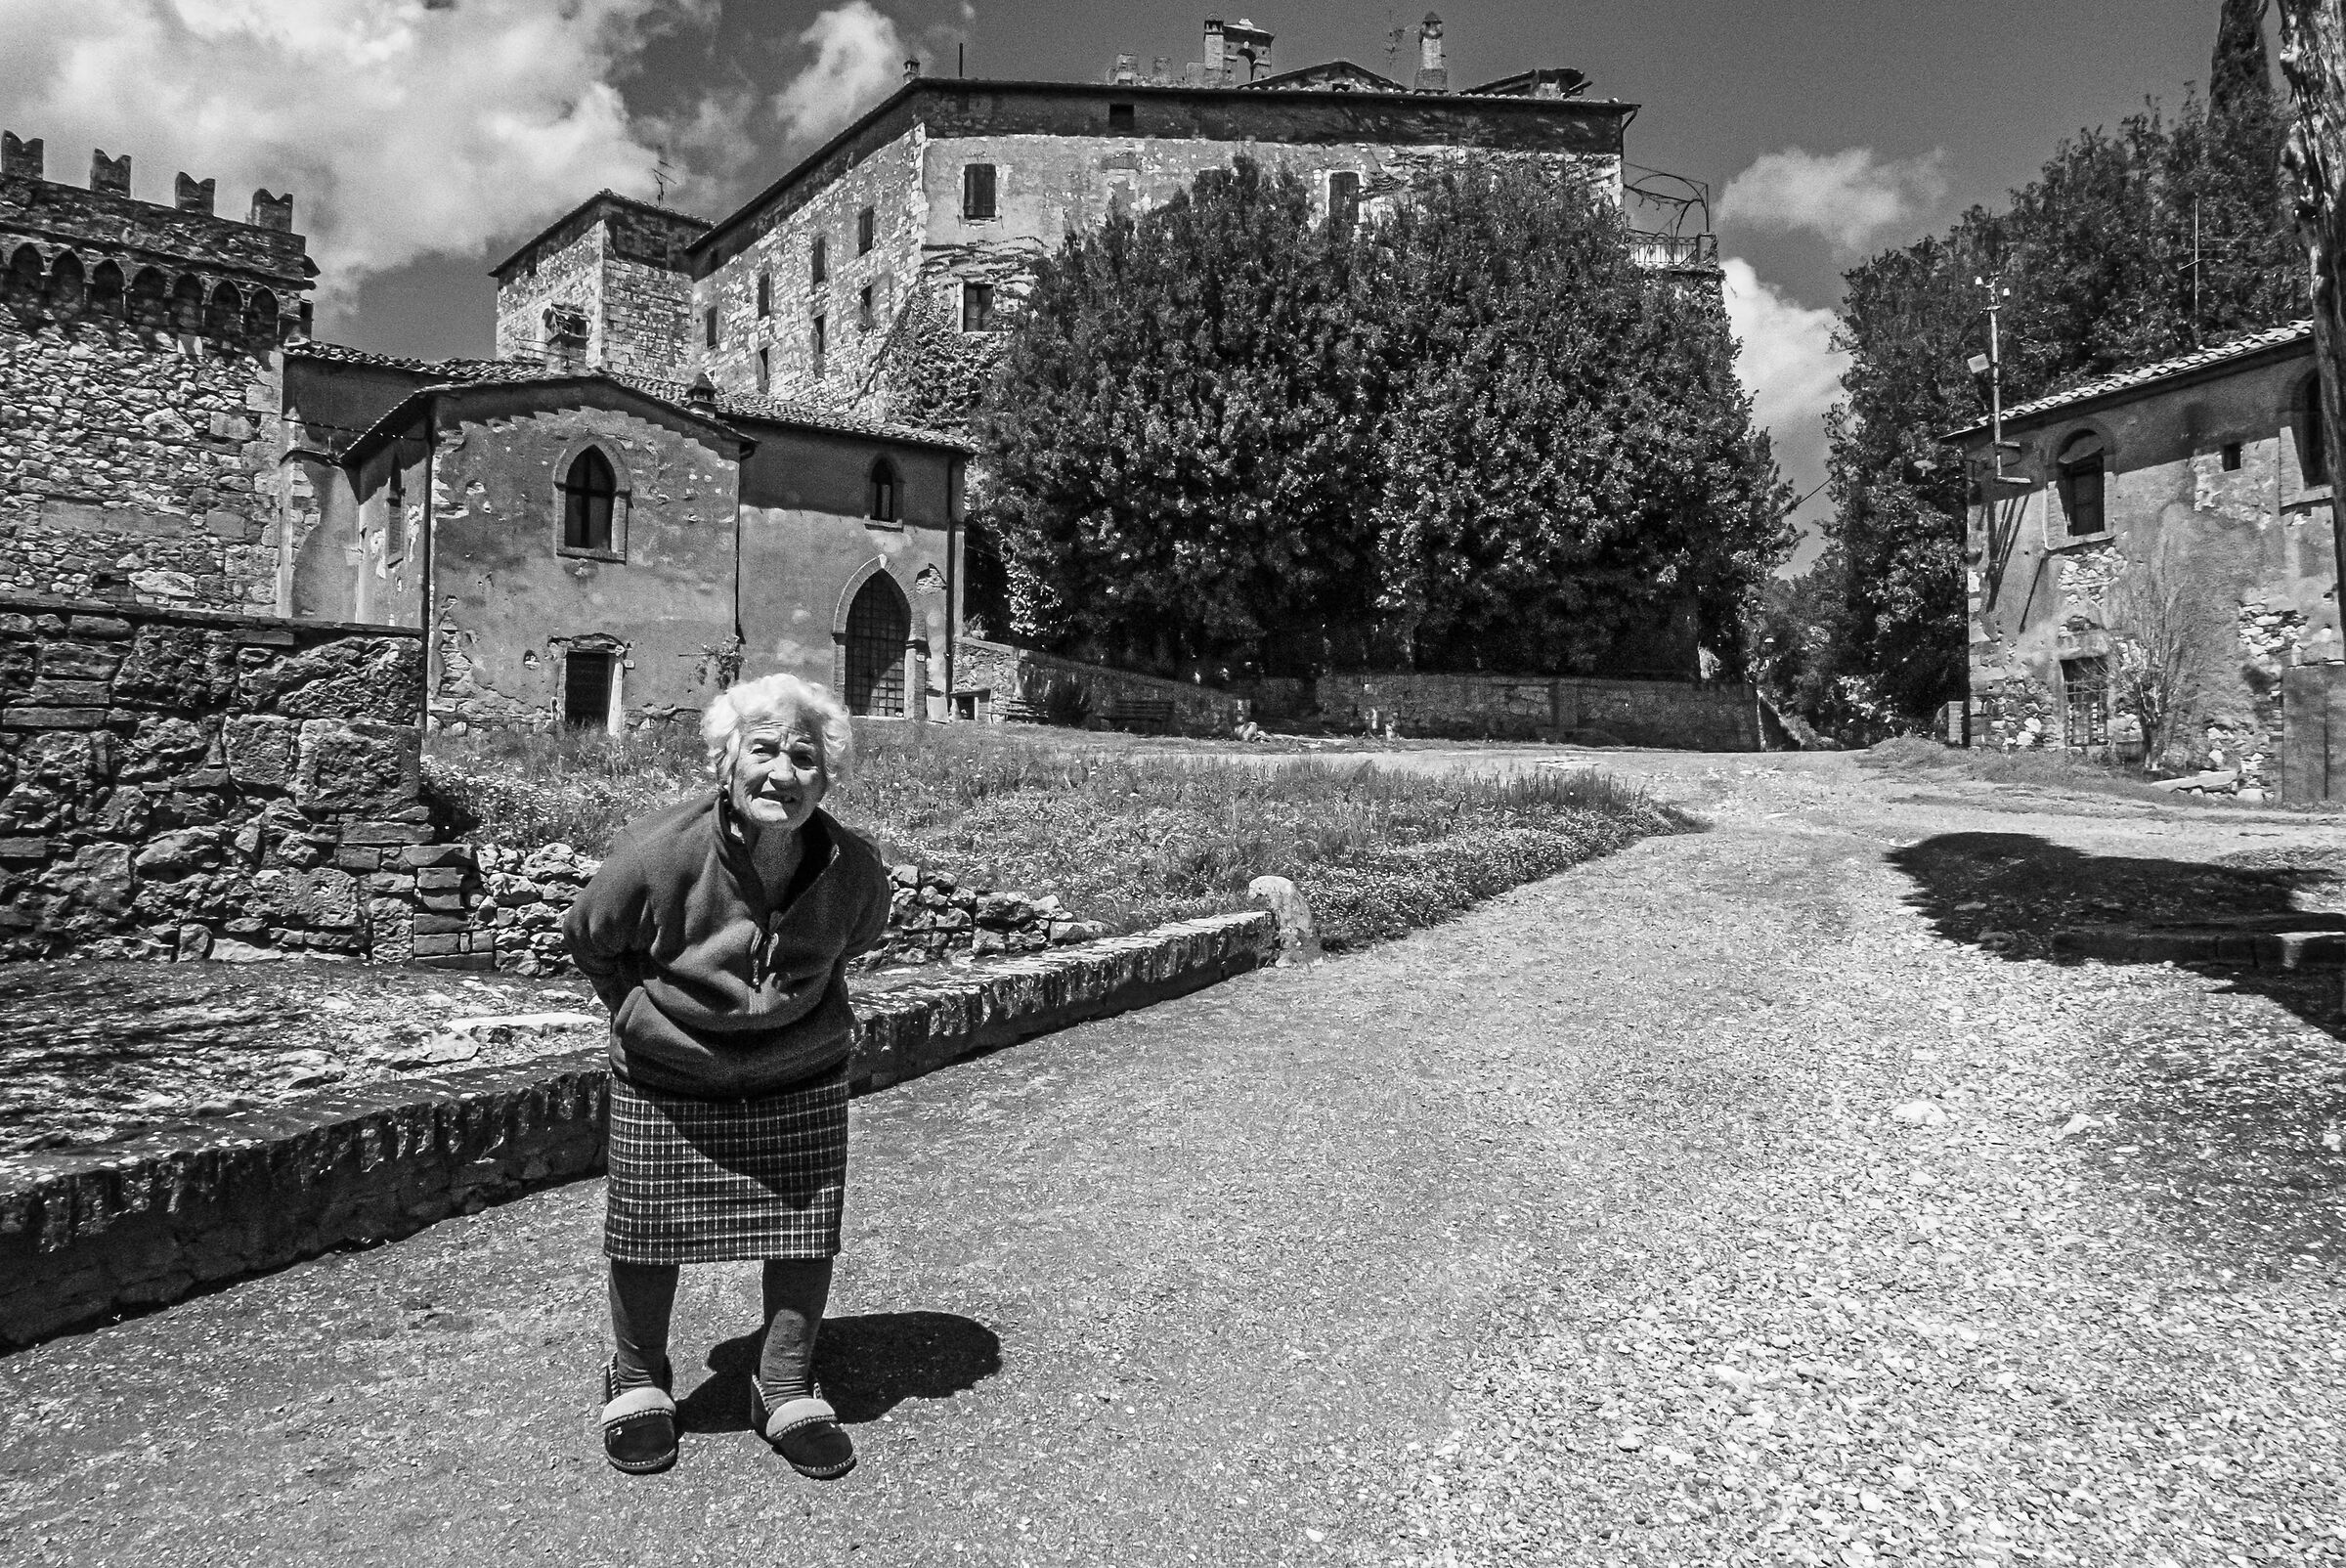 One of the two inhabitants of the Tuscan village...